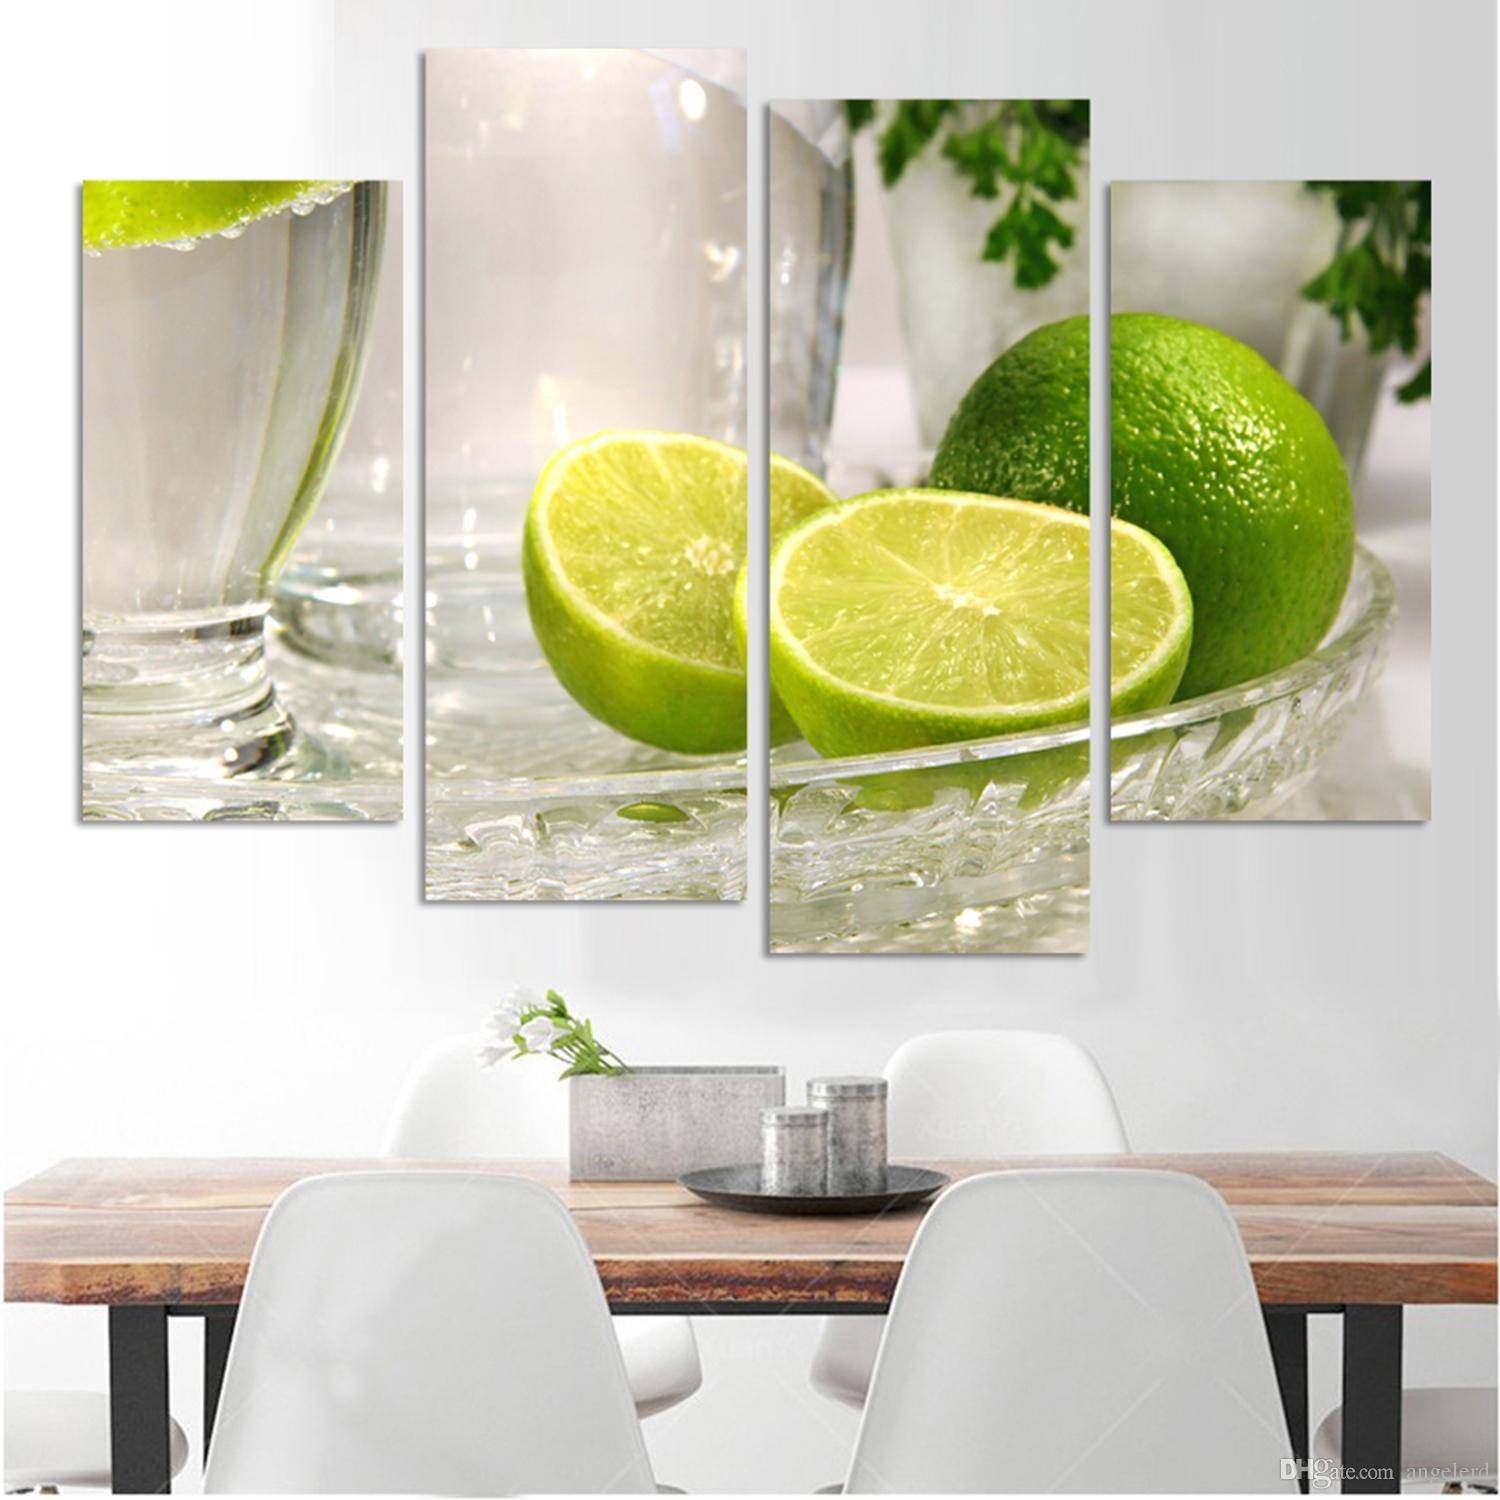 Best 4 Panels Lemon Fruit Green Canvas Painting Modern Wall With Regard To Most Popular Green Canvas Wall Art (View 8 of 20)